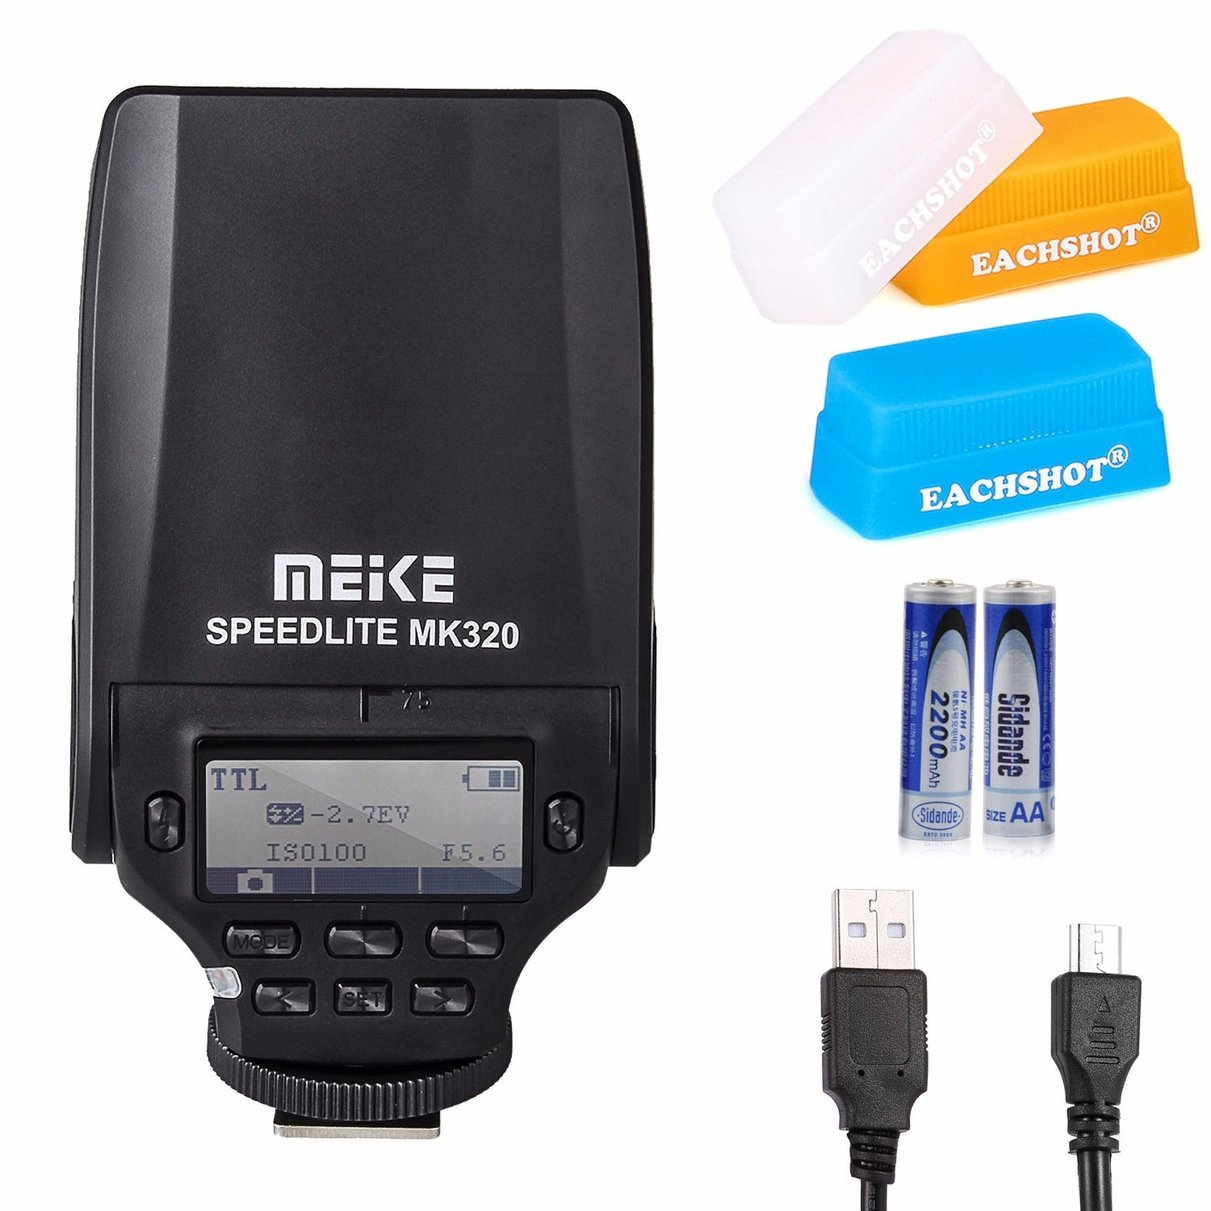 MEIKE MK-320 TTL flash Speedlite for Sony With EACHSHOT Micro USB + 2PCS AA Battery + 3PCS Silicone Diffuser mini flash light meike mk320 mk 320 mk320 c gn32 ettl speedlite for can 60d 7d 6d 70d dslr